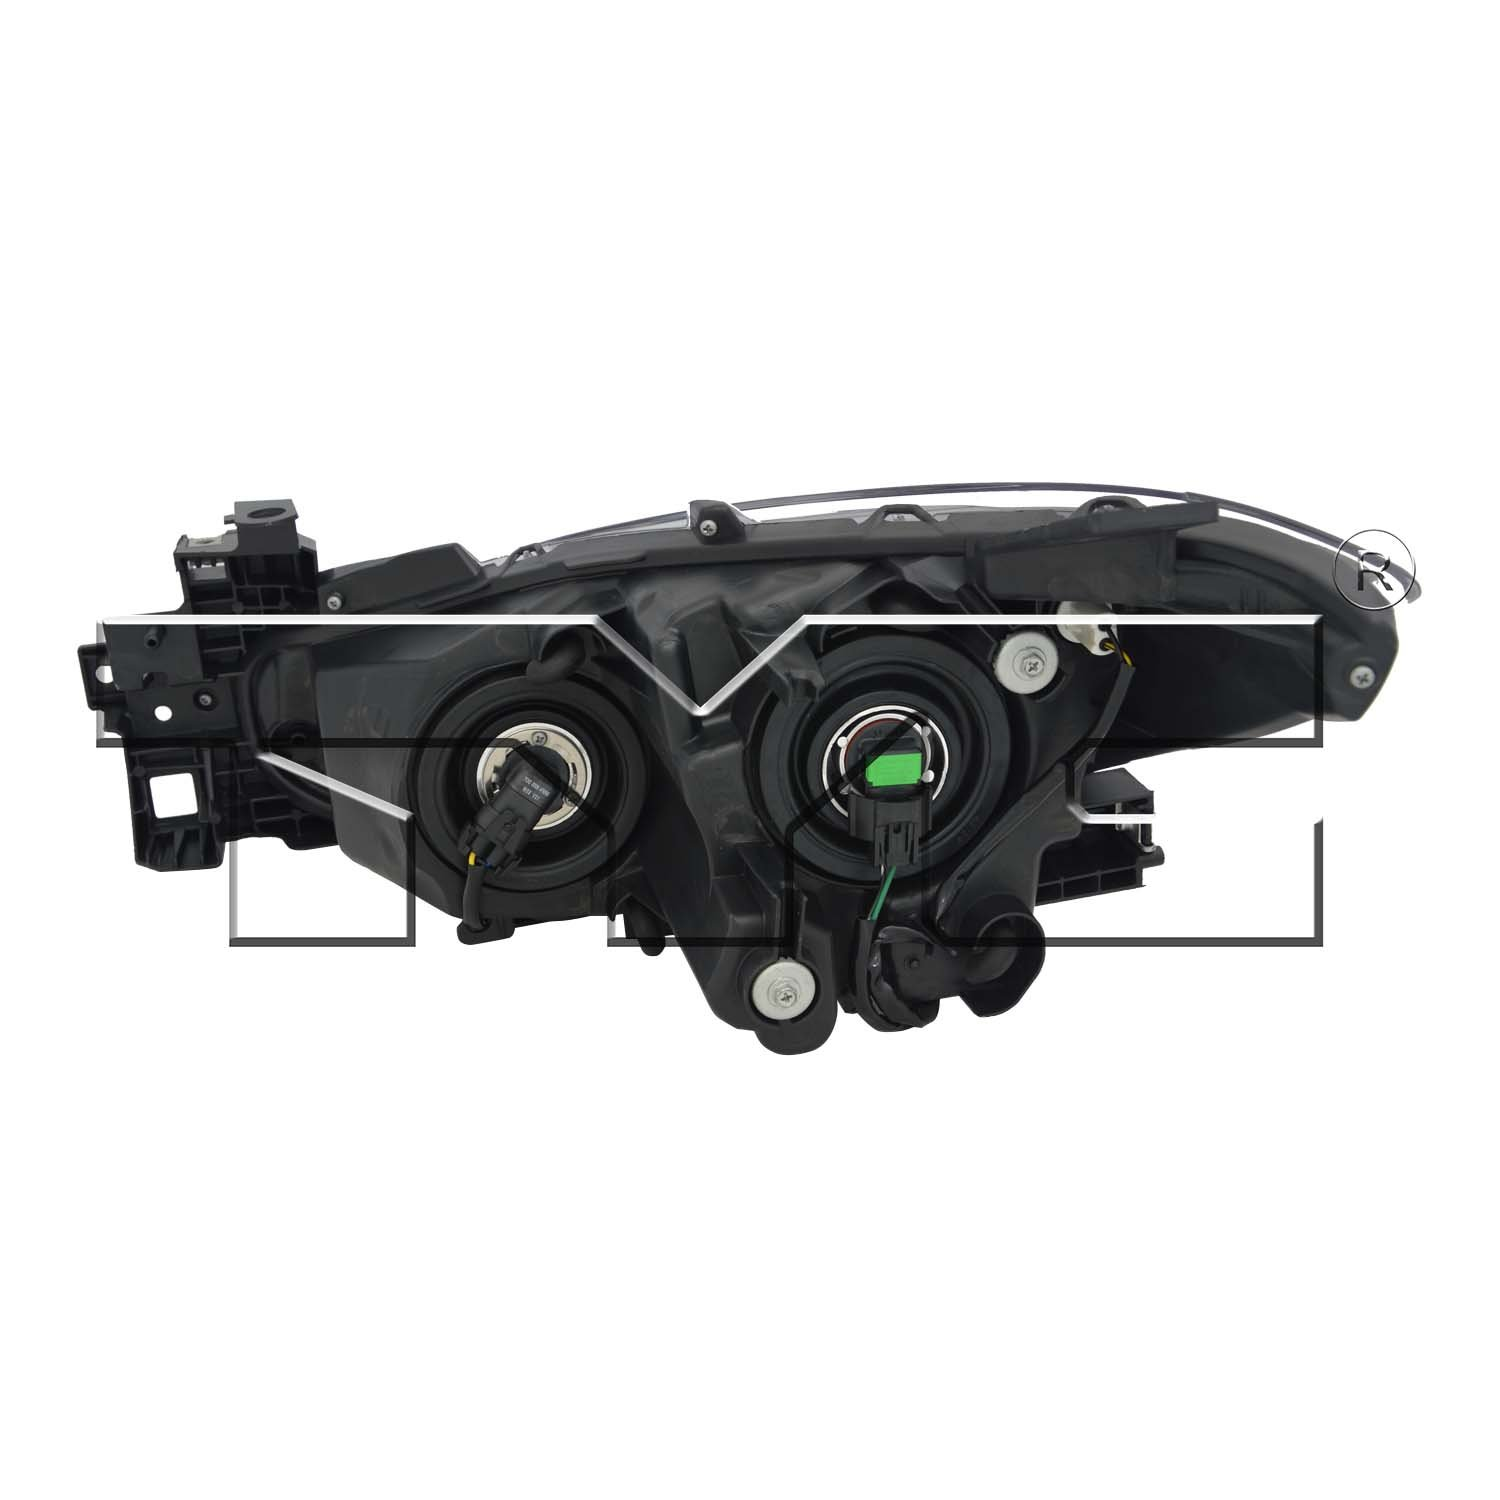 TYC 20-9523-00-1 Mazda 3 Right Replacement Head Lamp